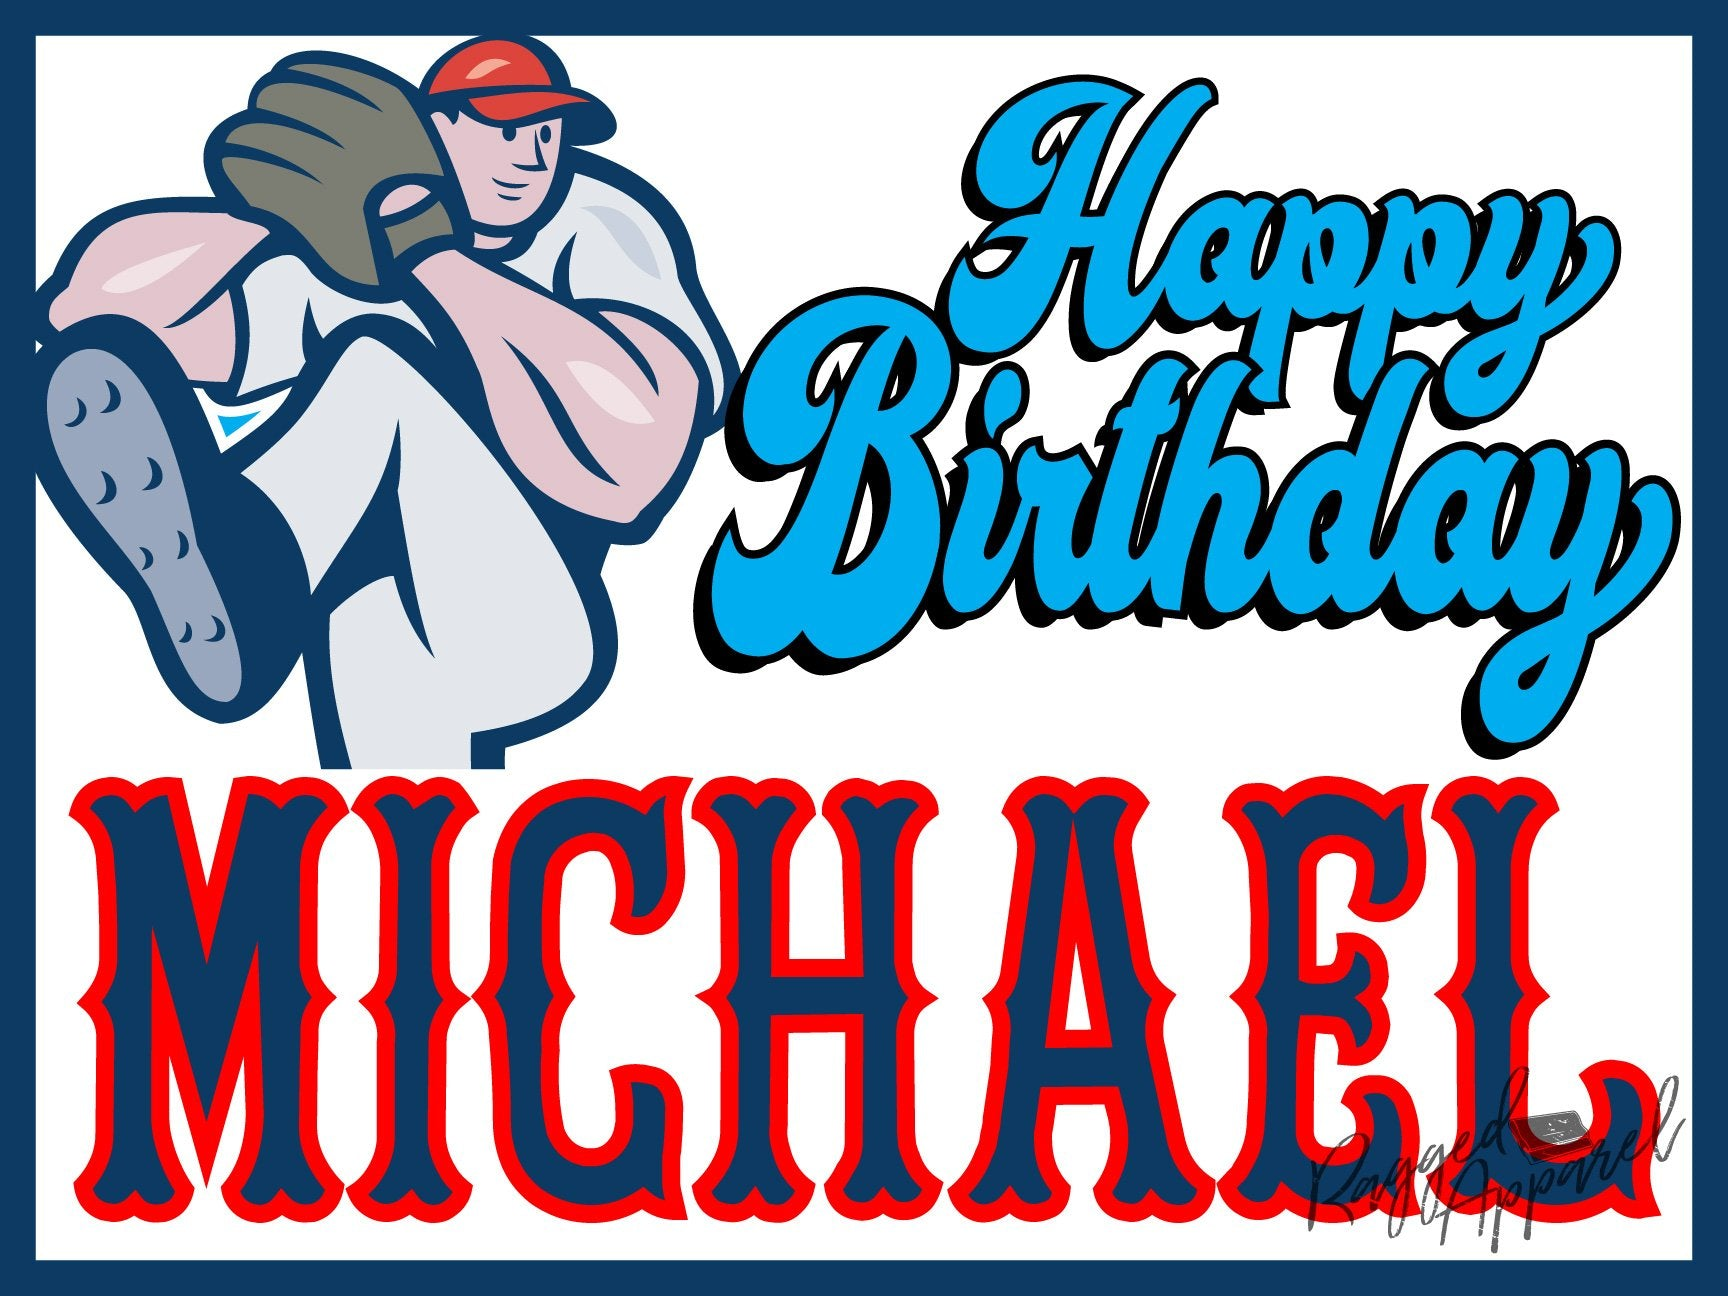 Kids Personalized Baseball Birthday Sign - Ragged Apparel Screen Printing and Signs - www.nmshirts.com